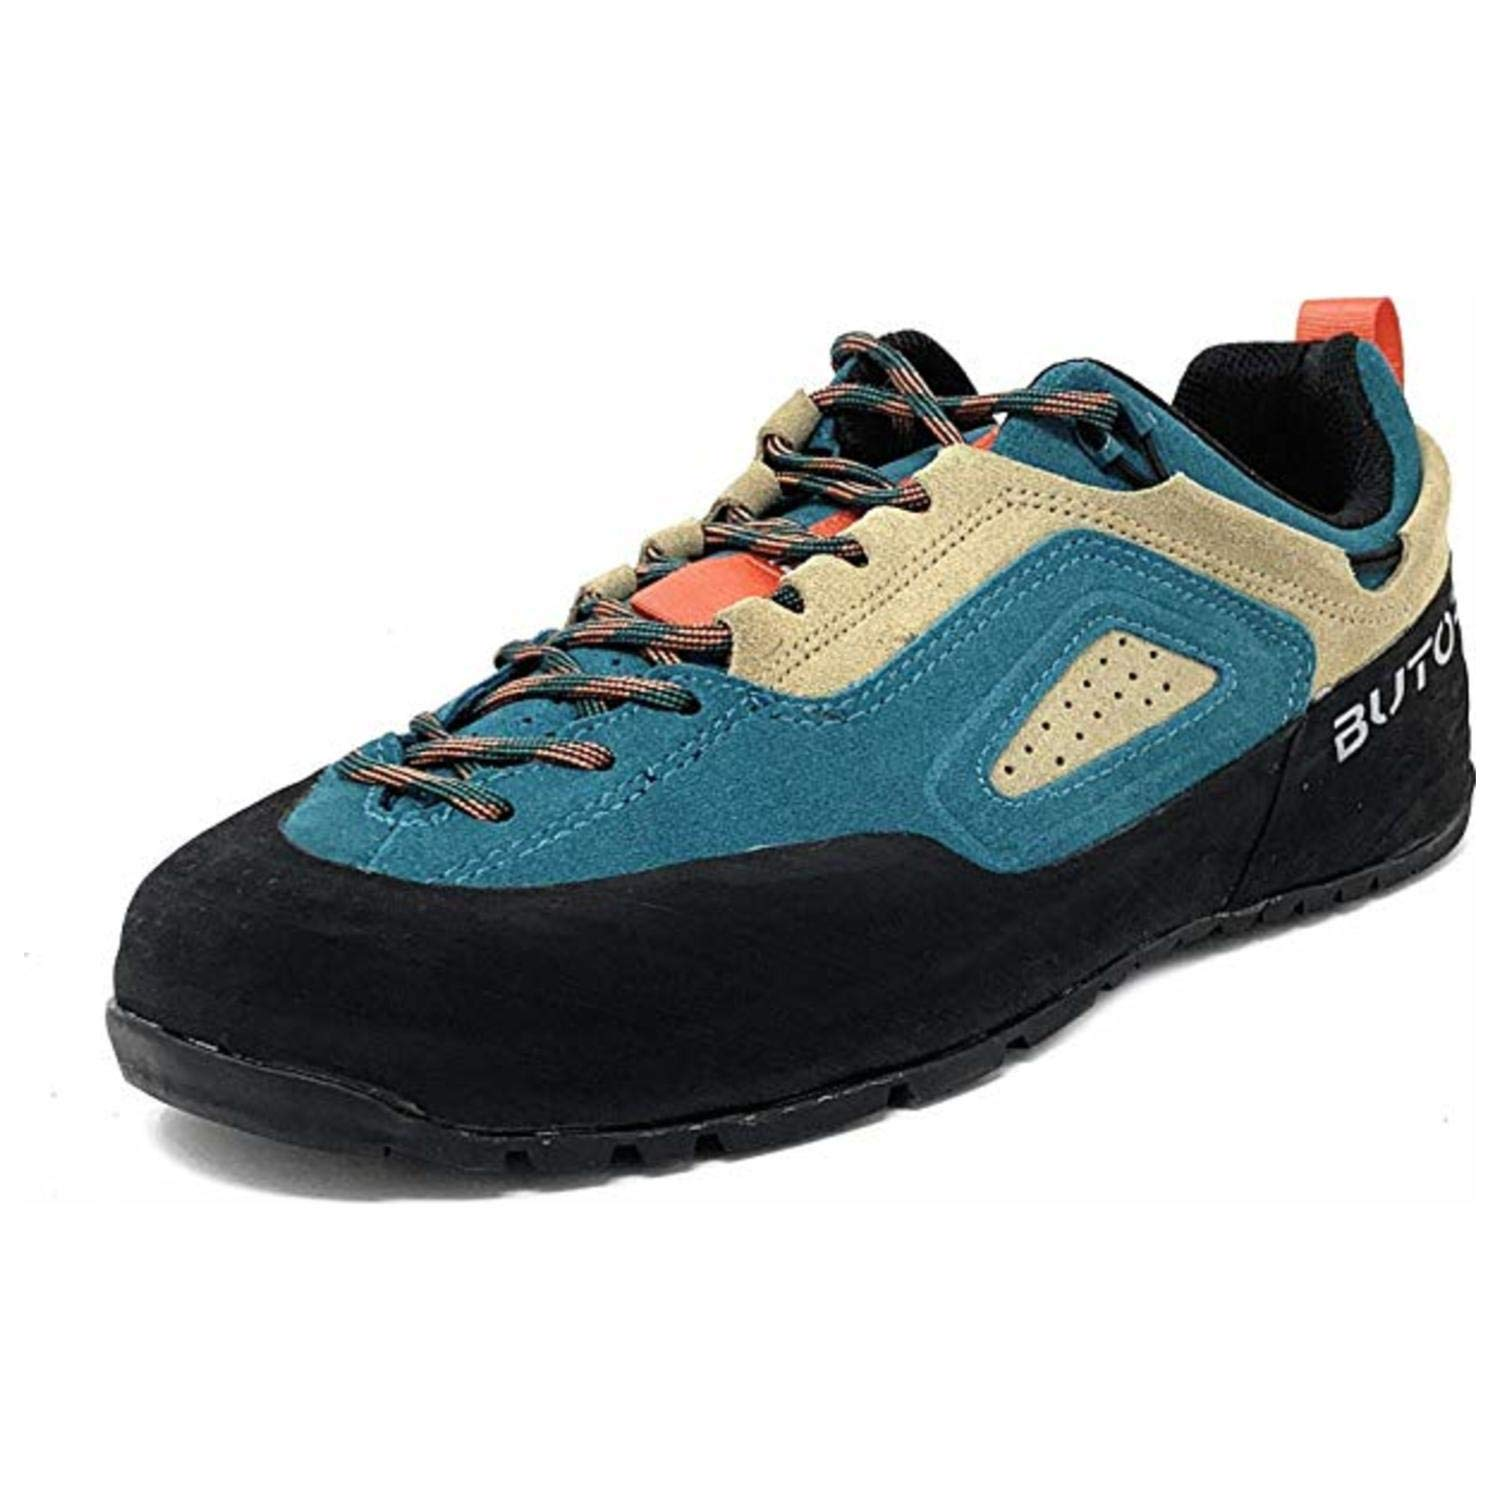 Butora Mens Wing Approach Shoes (8.5 M US, Blue)